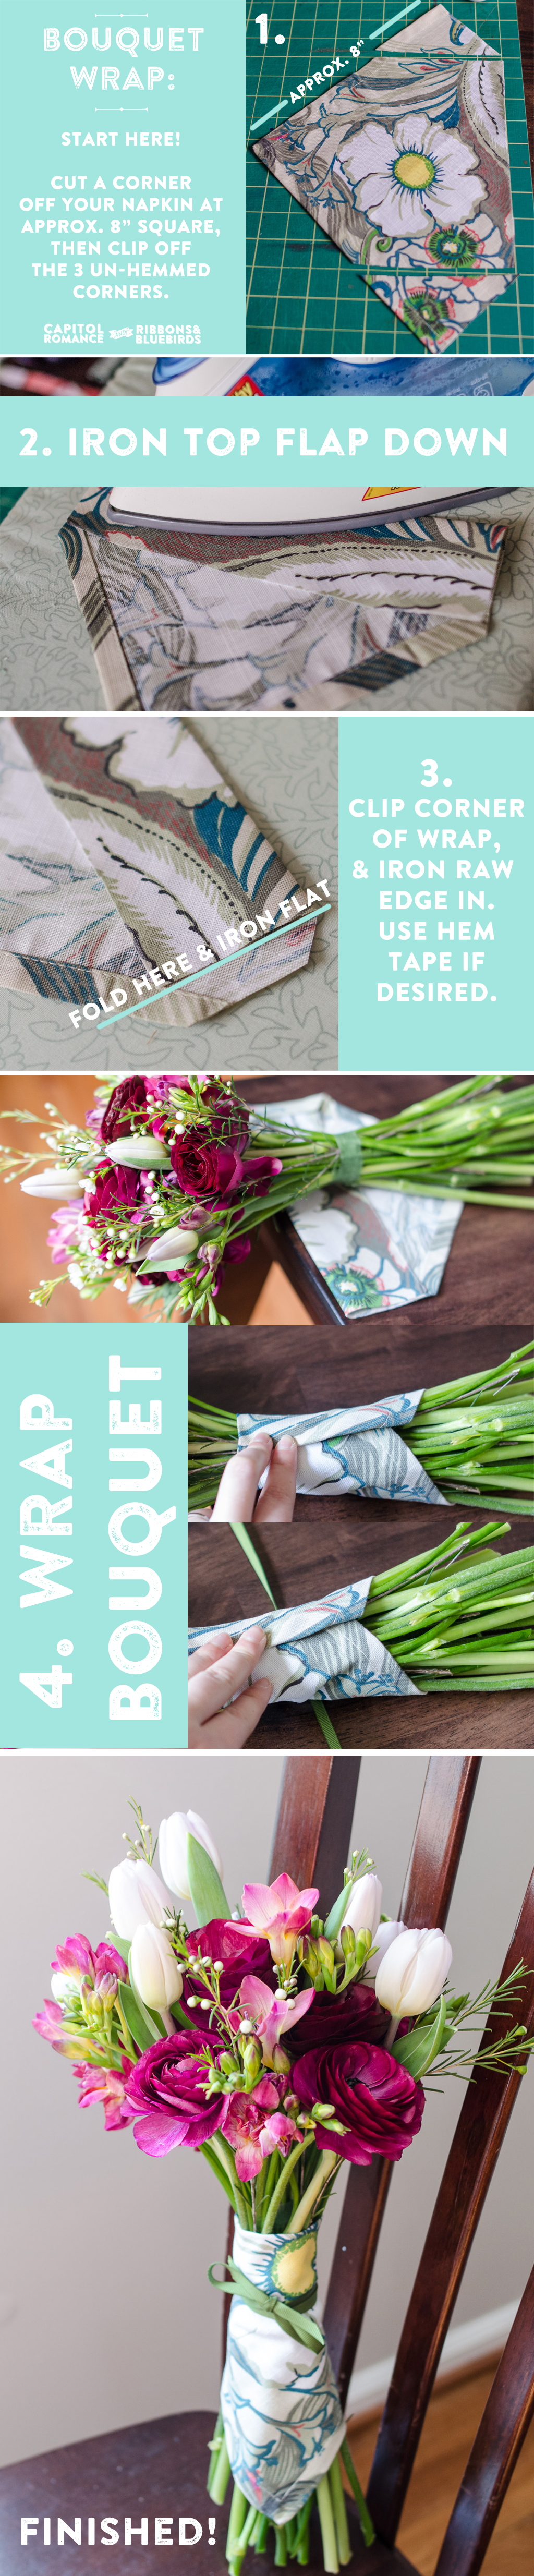 napkin_diy_bouquet wrap